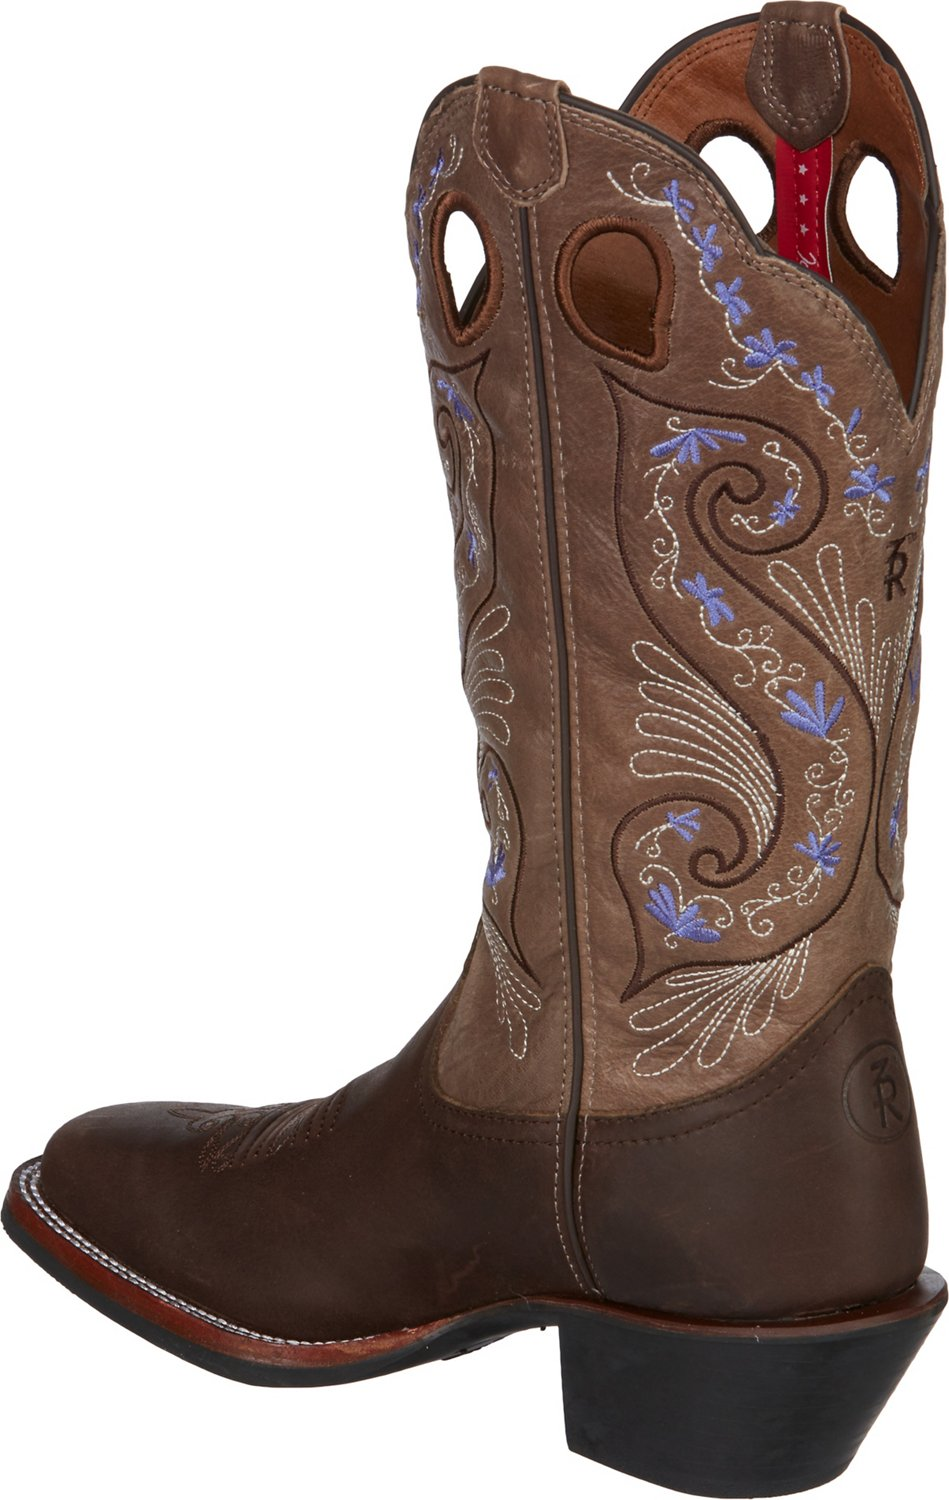 Tony Lama Women's Bridle Shiloh 3R Western Boots - view number 2